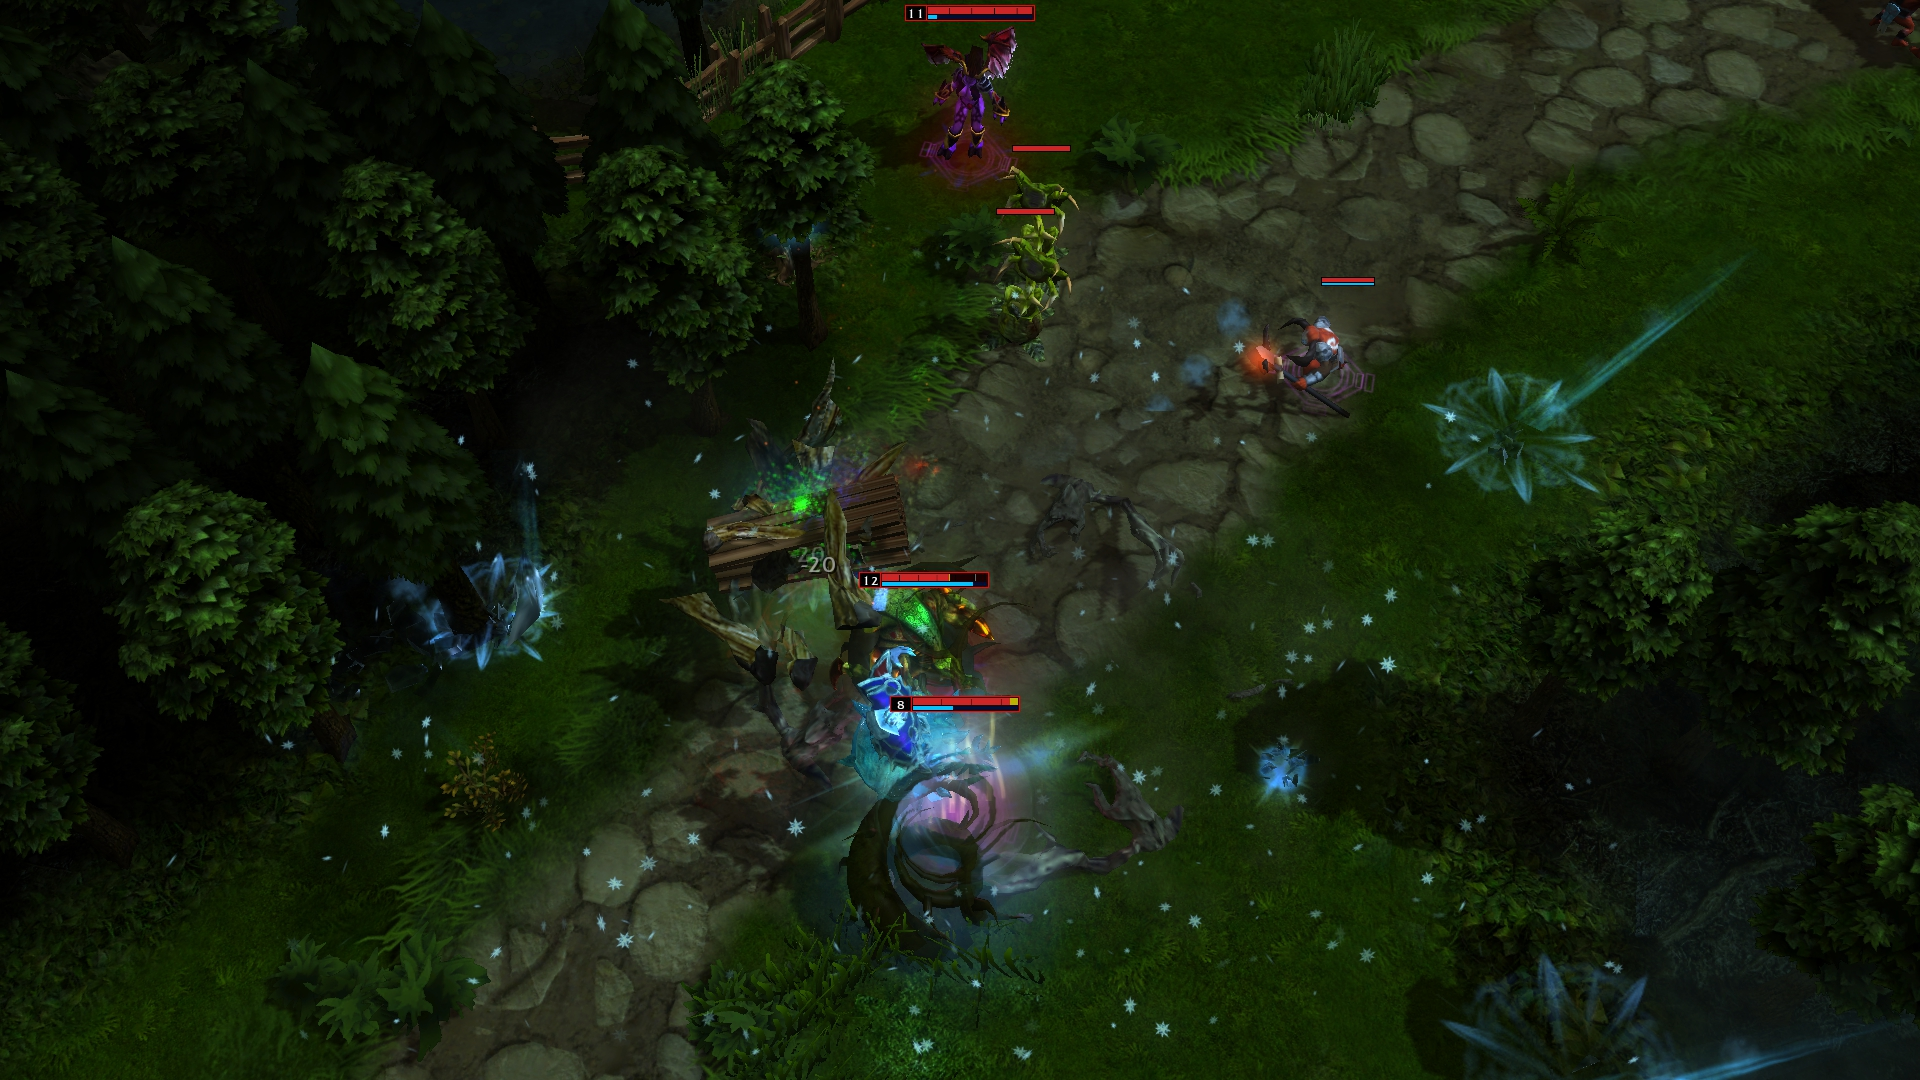 Heroes of Newerth Gameplay Screenshot 2